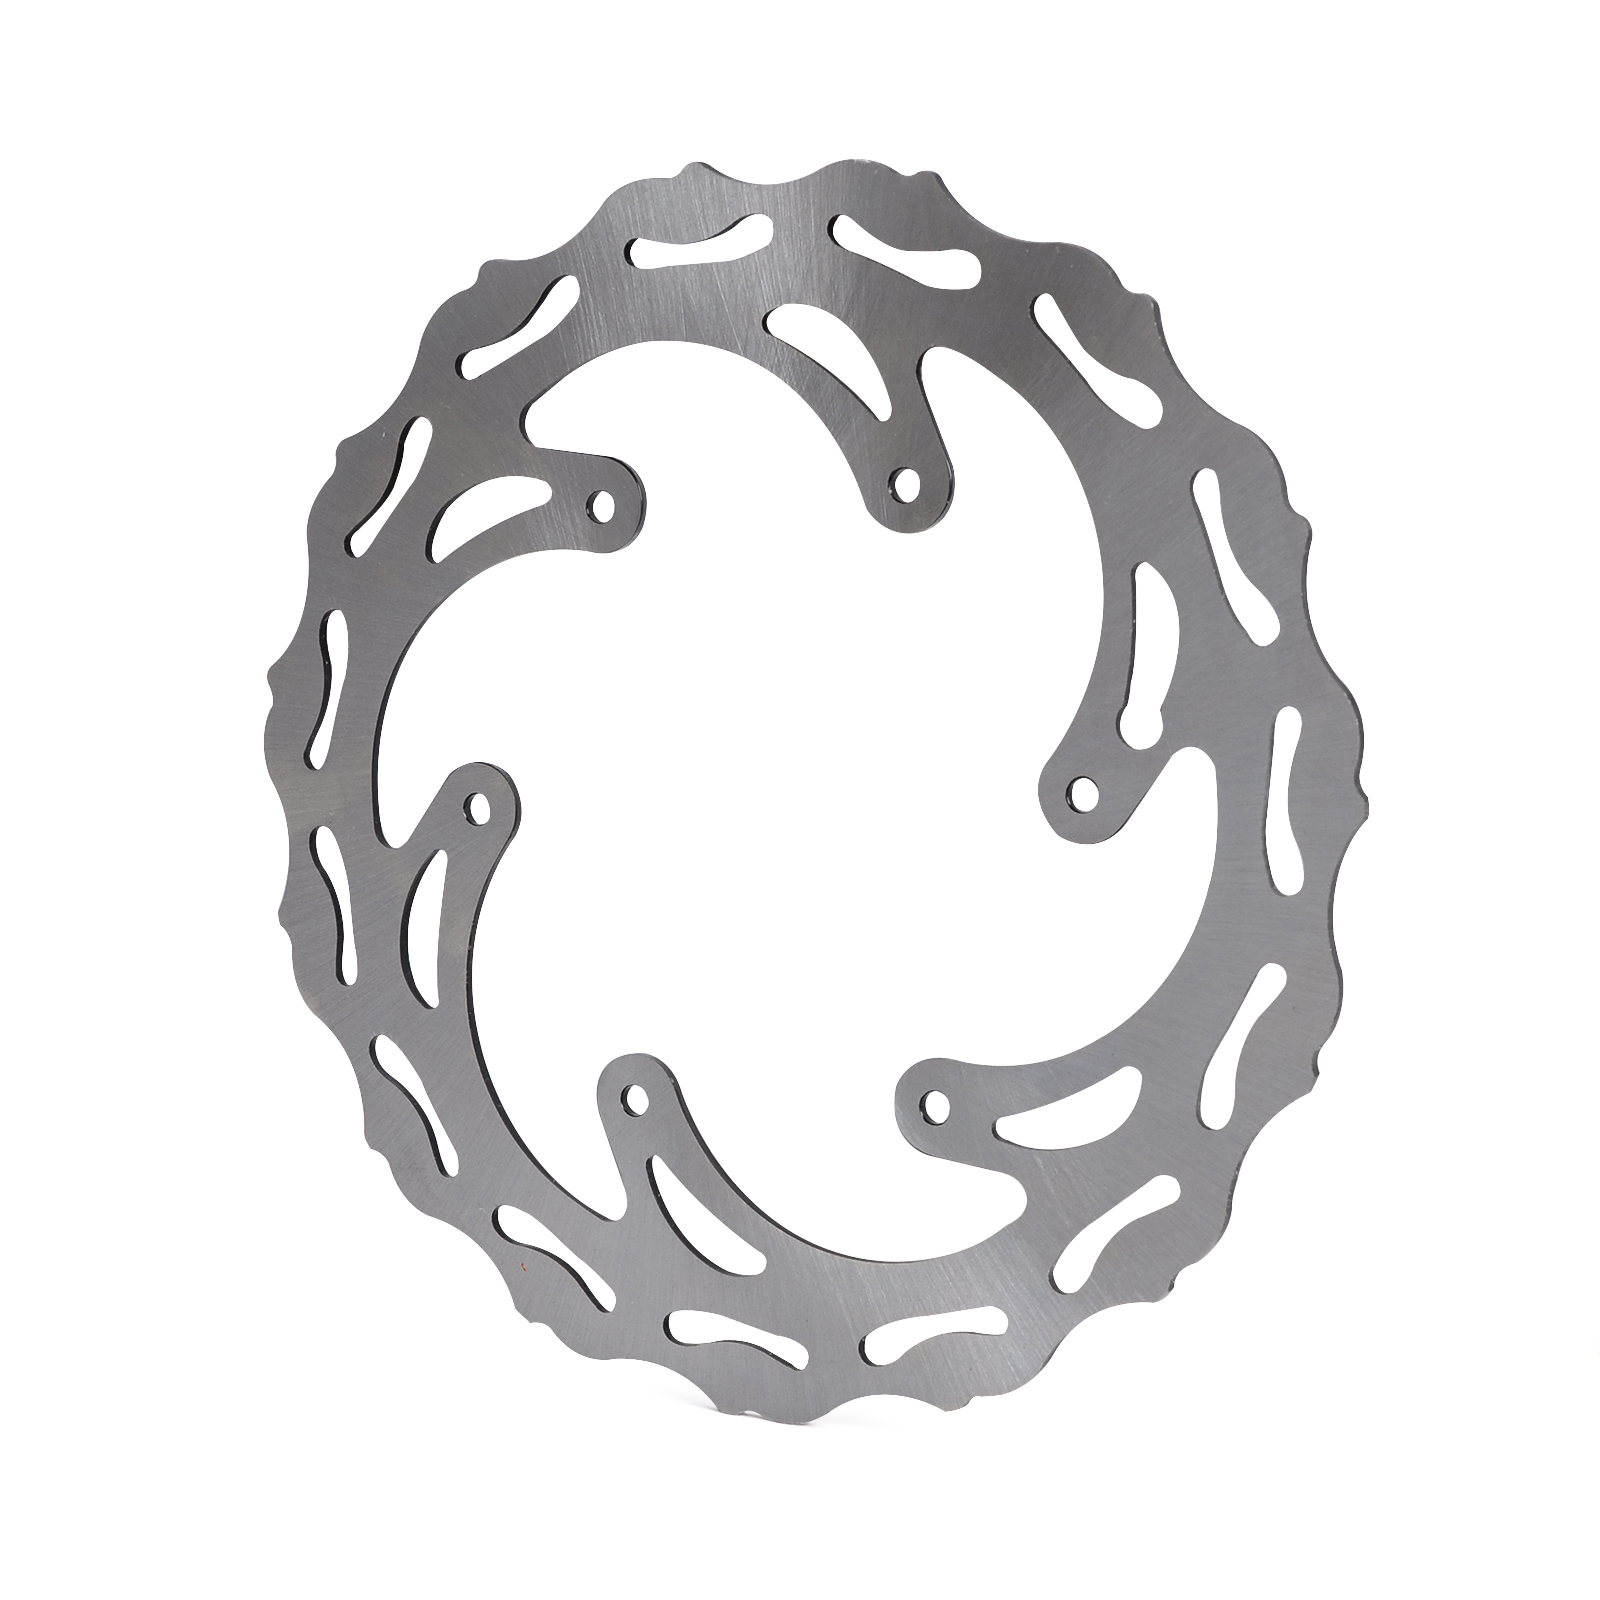 Motorcycle front brake disc rotor for ktm 125 sx xc 250 exc 300 400 450 500 525 530 exce excf excr sxf 2007 2016 in brake disks from automobiles